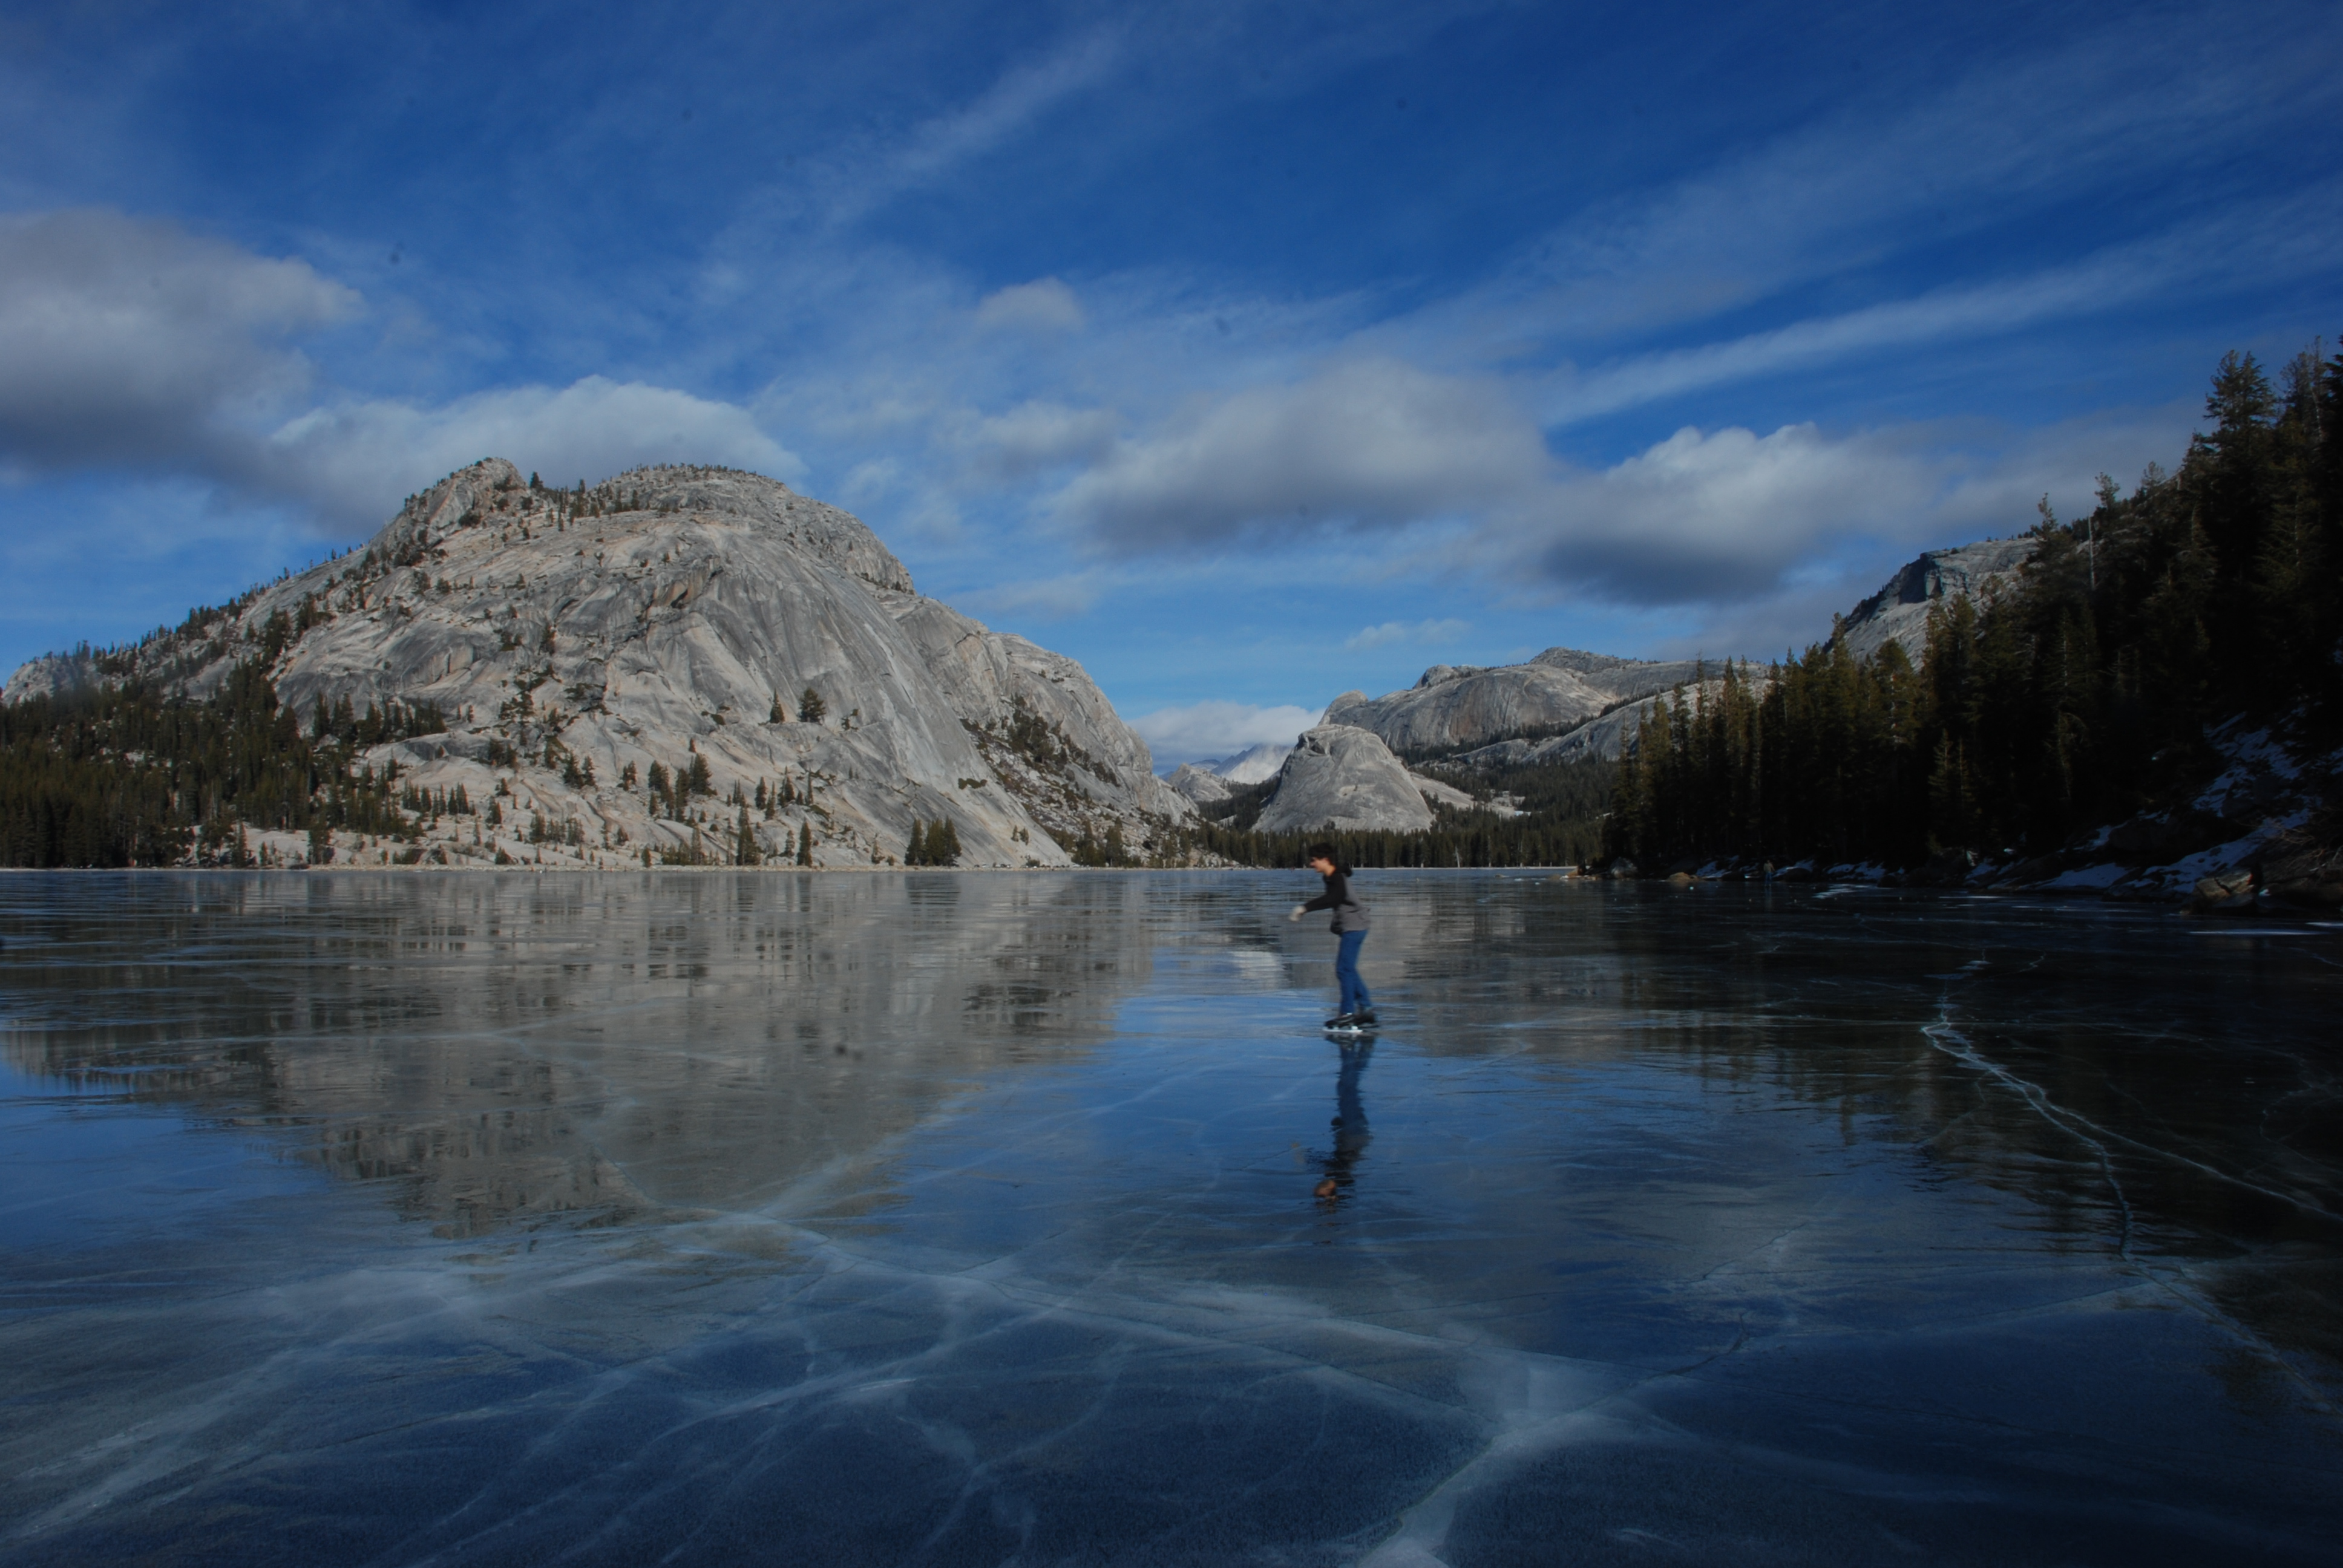 Image of an ice skater on Tenaya Lake